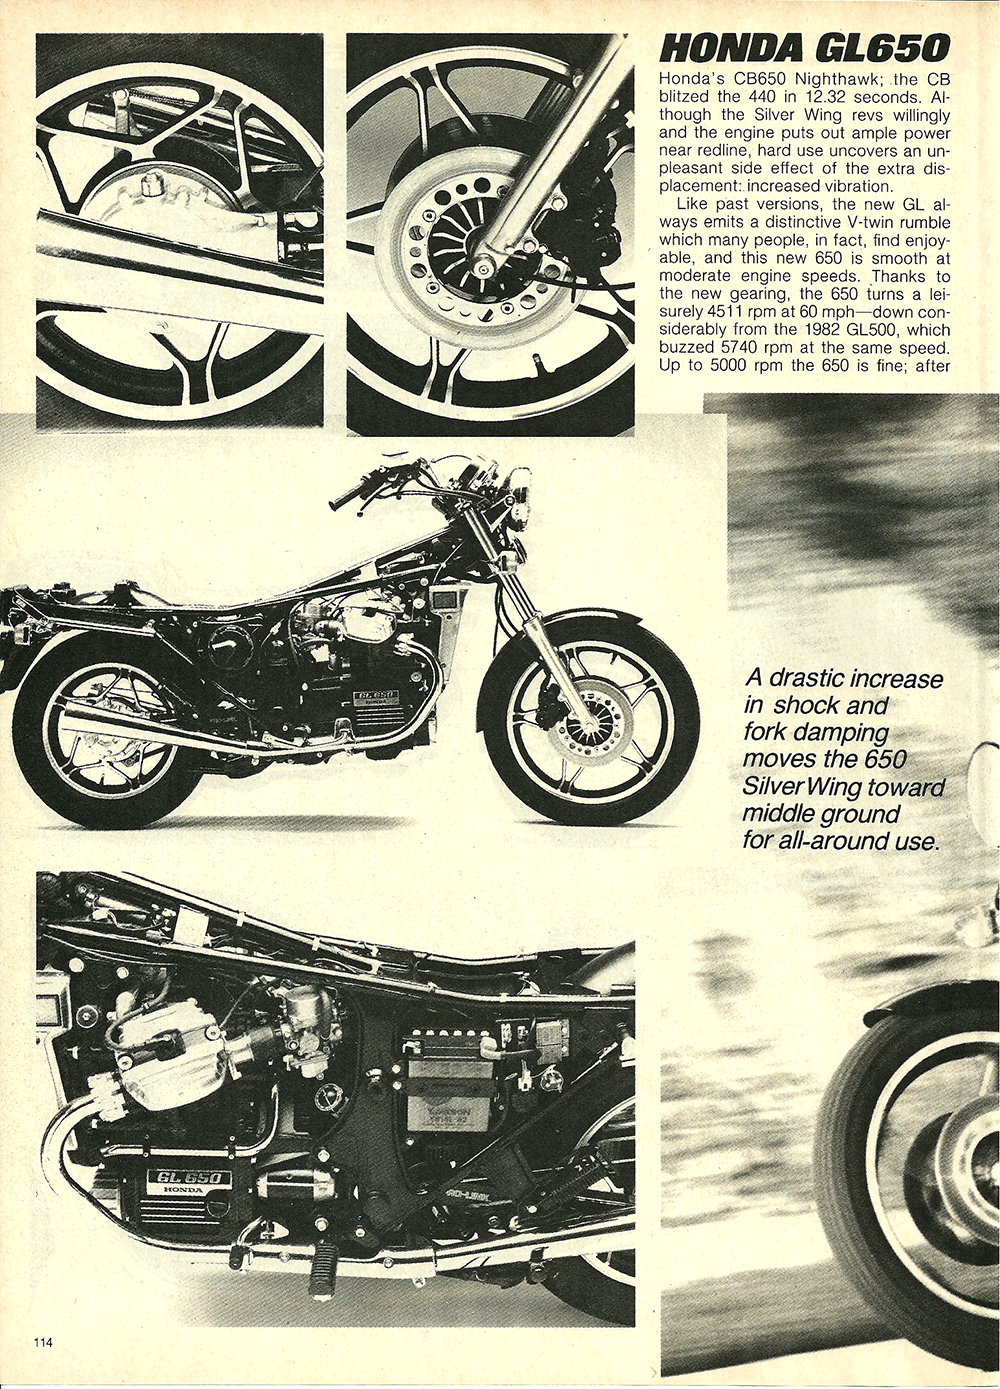 1983 Honda GL650 Silver Wing road test 4.jpg